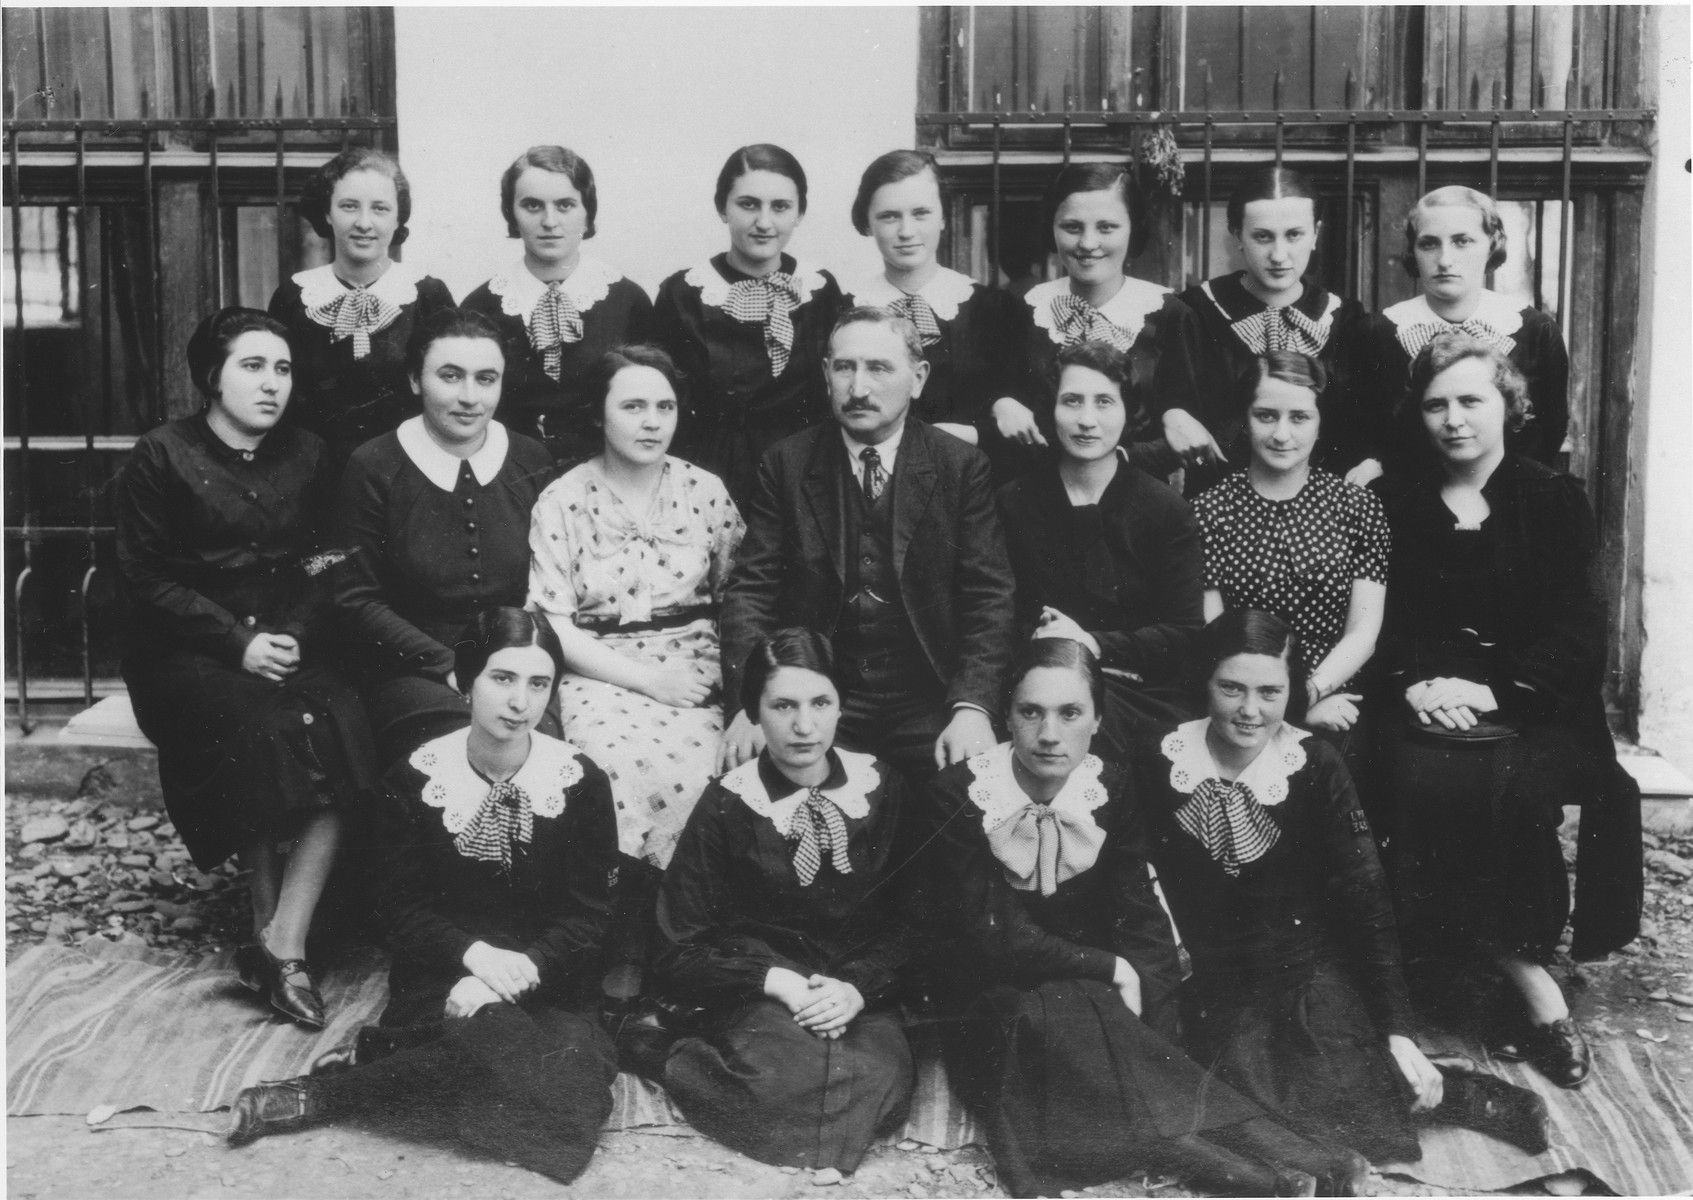 Lotte Gottfried (top row, right) with her classmates at the Hoffman gymnasium in Czernowitz.